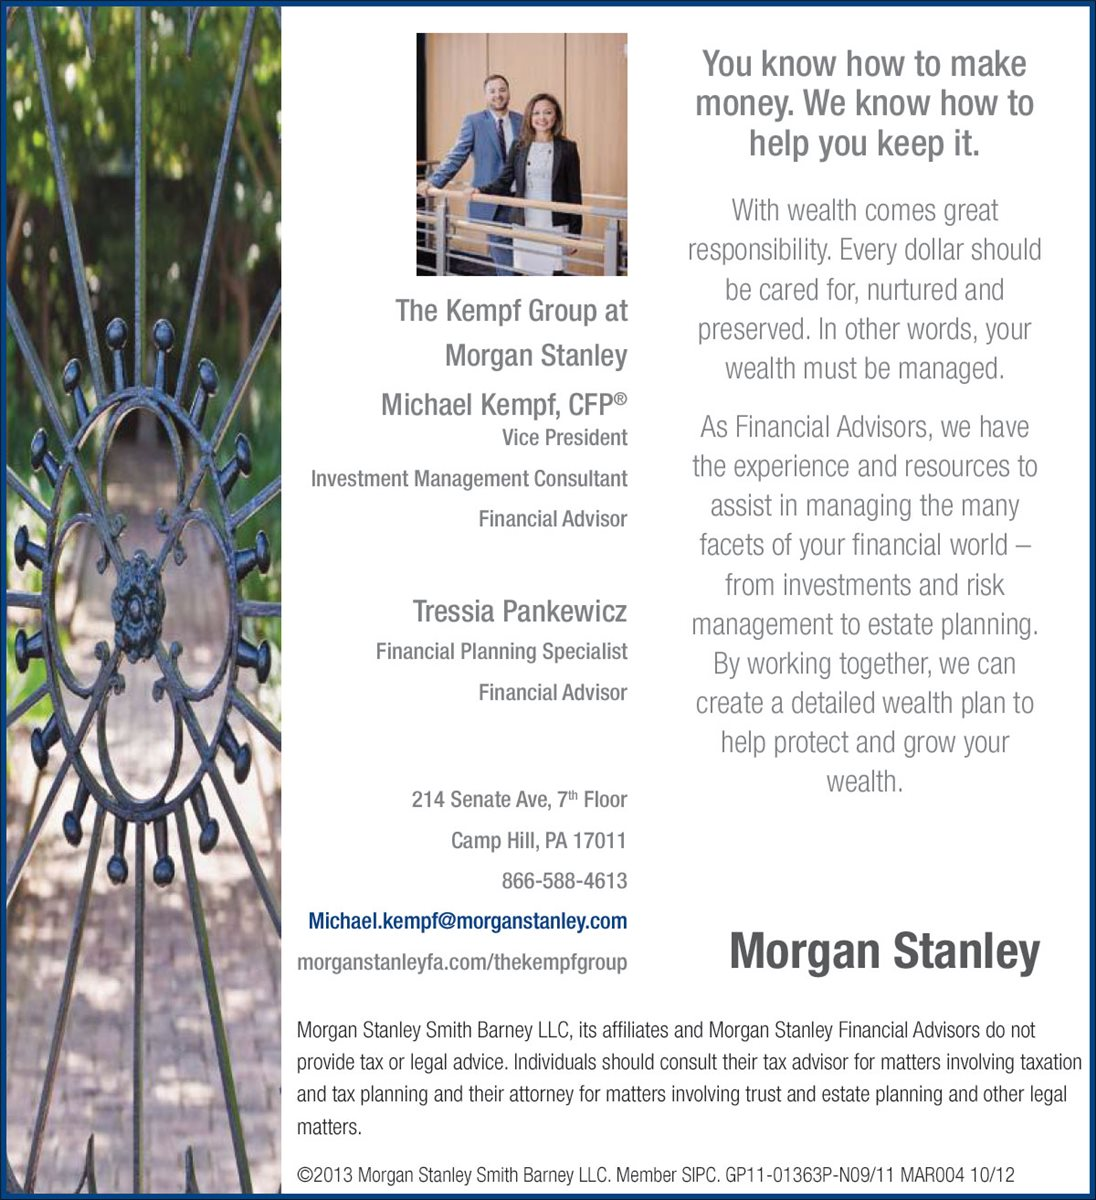 Christians In Business - The Kempf Group @ Morgan Stanley